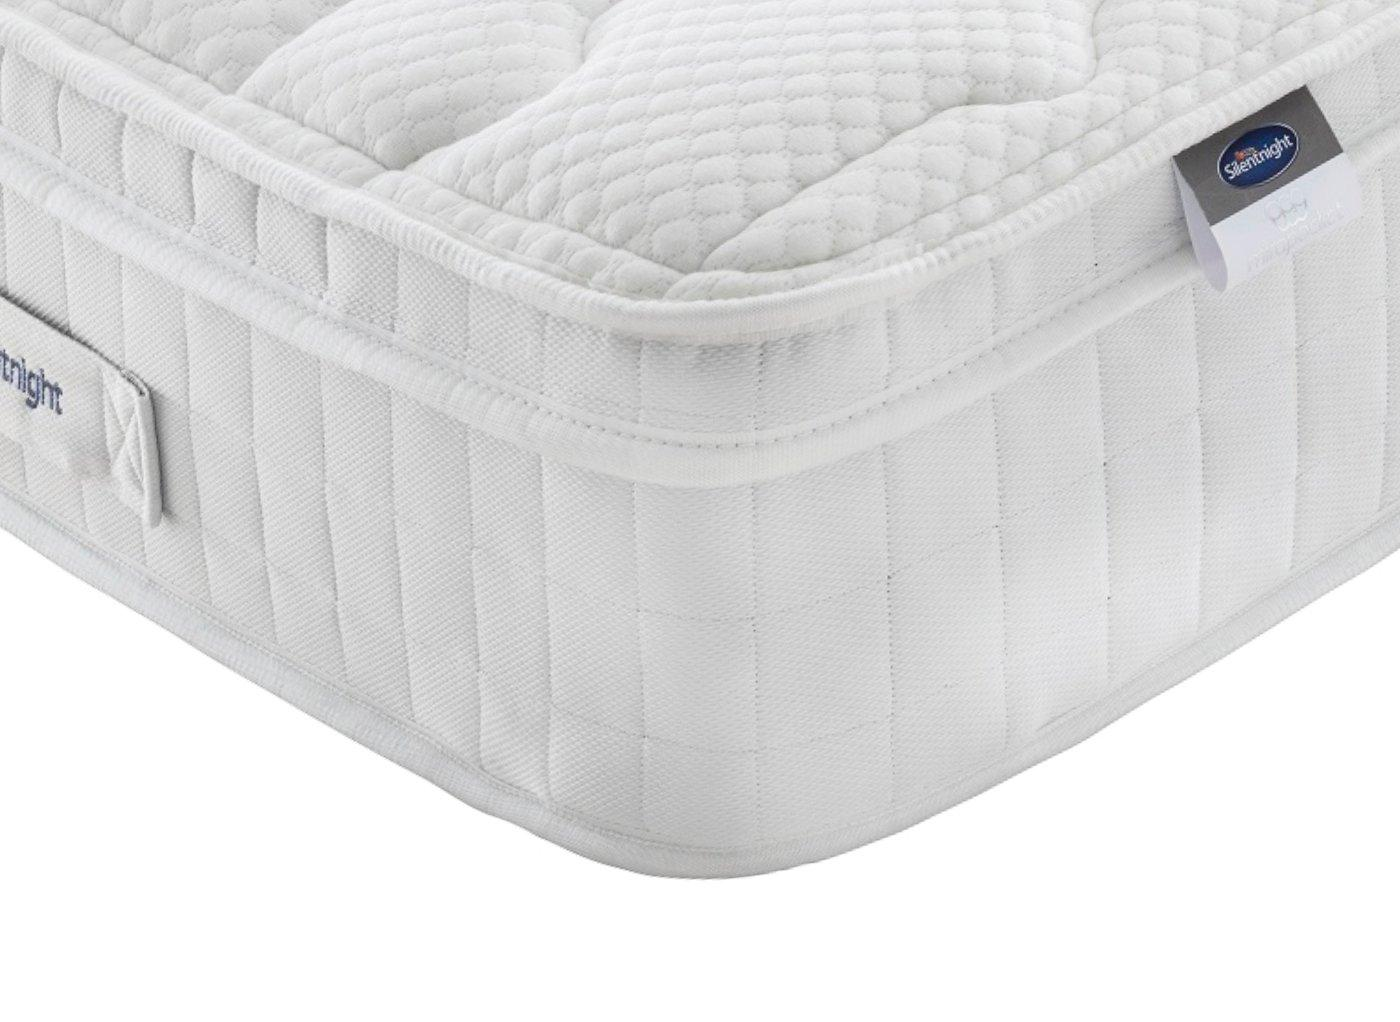 Dreams Beds Northampton Silentnight Farrington Mirapocket Mattress 4 6 Double Size Dreams